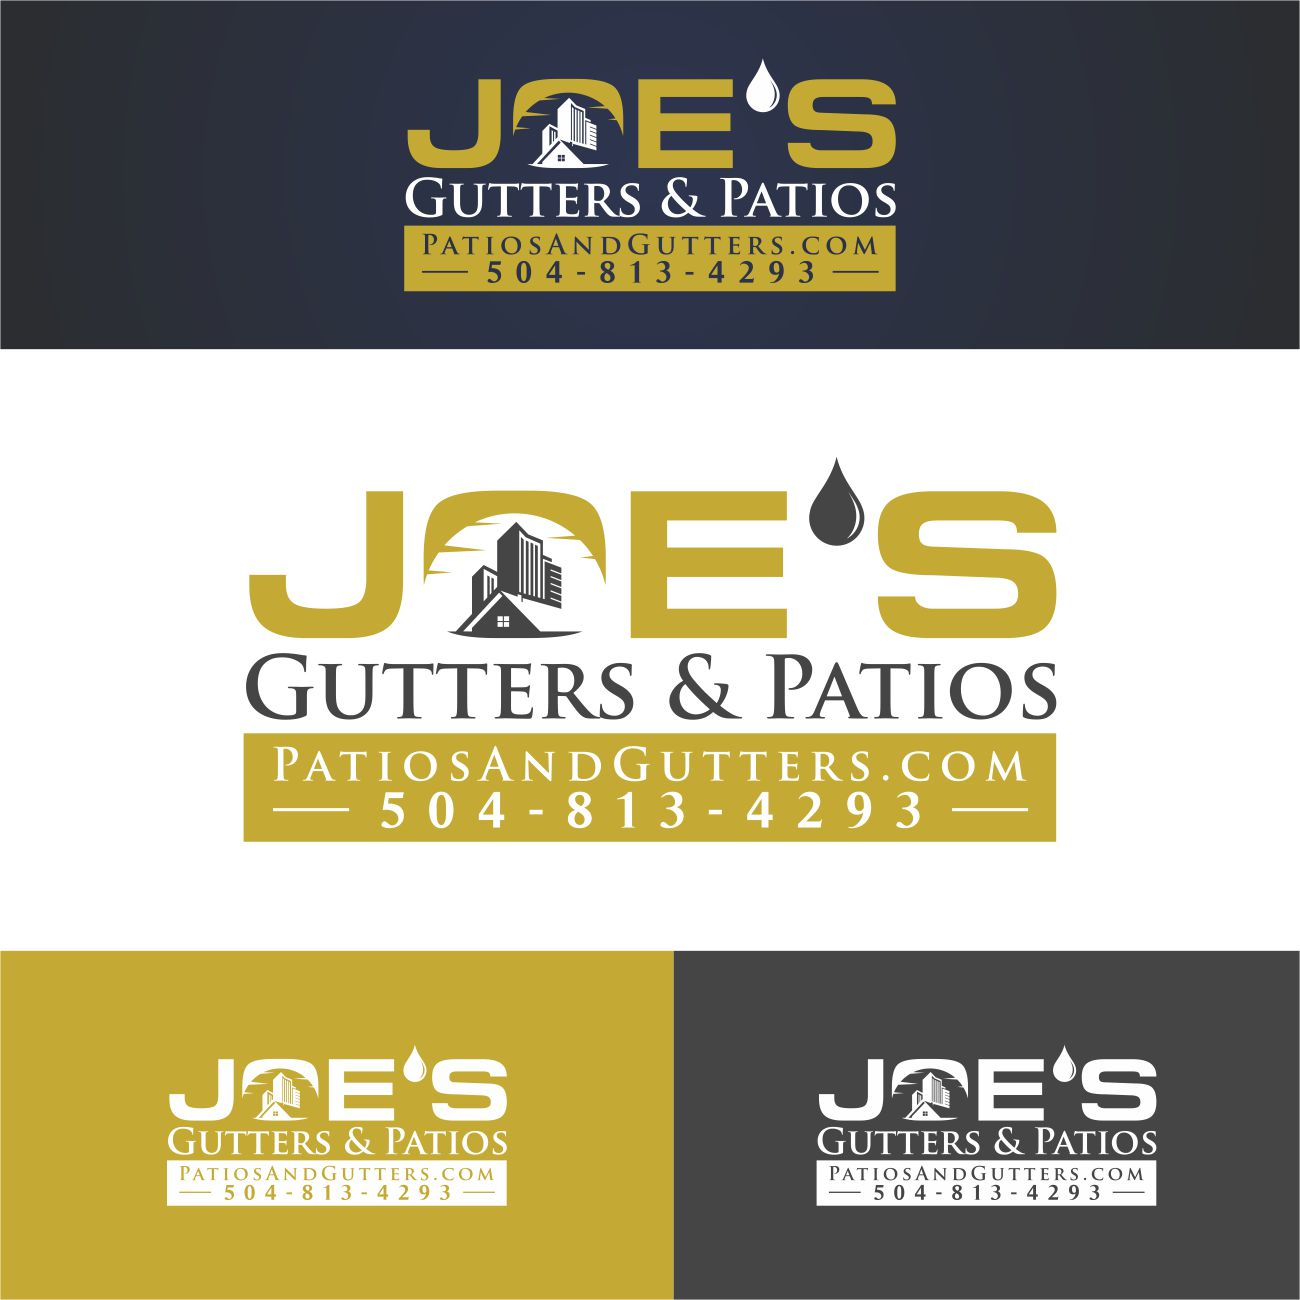 Logo Design by RasYa Muhammad Athaya - Entry No. 5 in the Logo Design Contest Imaginative Logo Design for Joes Gutters & Patios.